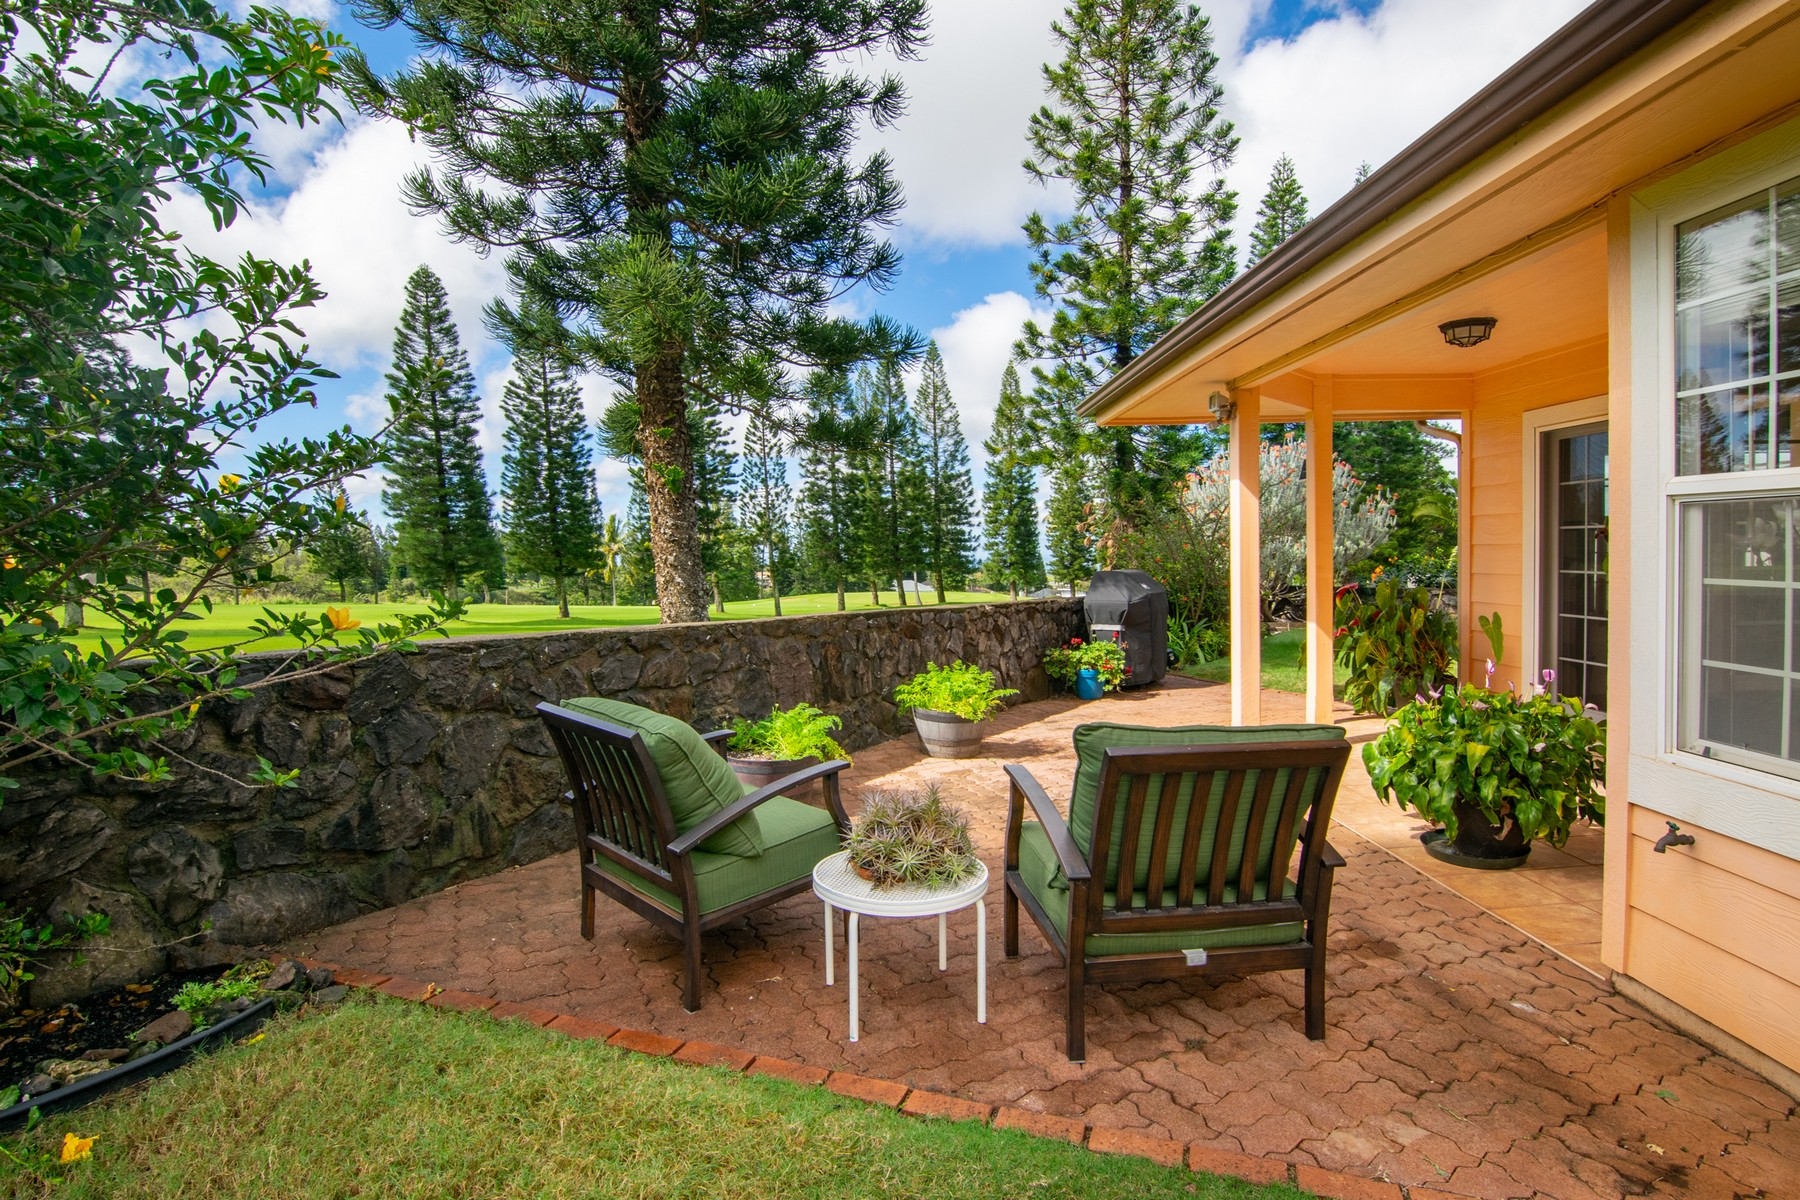 Single Family Home for Active at Golf Course in Your Own Backyard! 2886 Ualani Place Pukalani, Hawaii 96768 United States